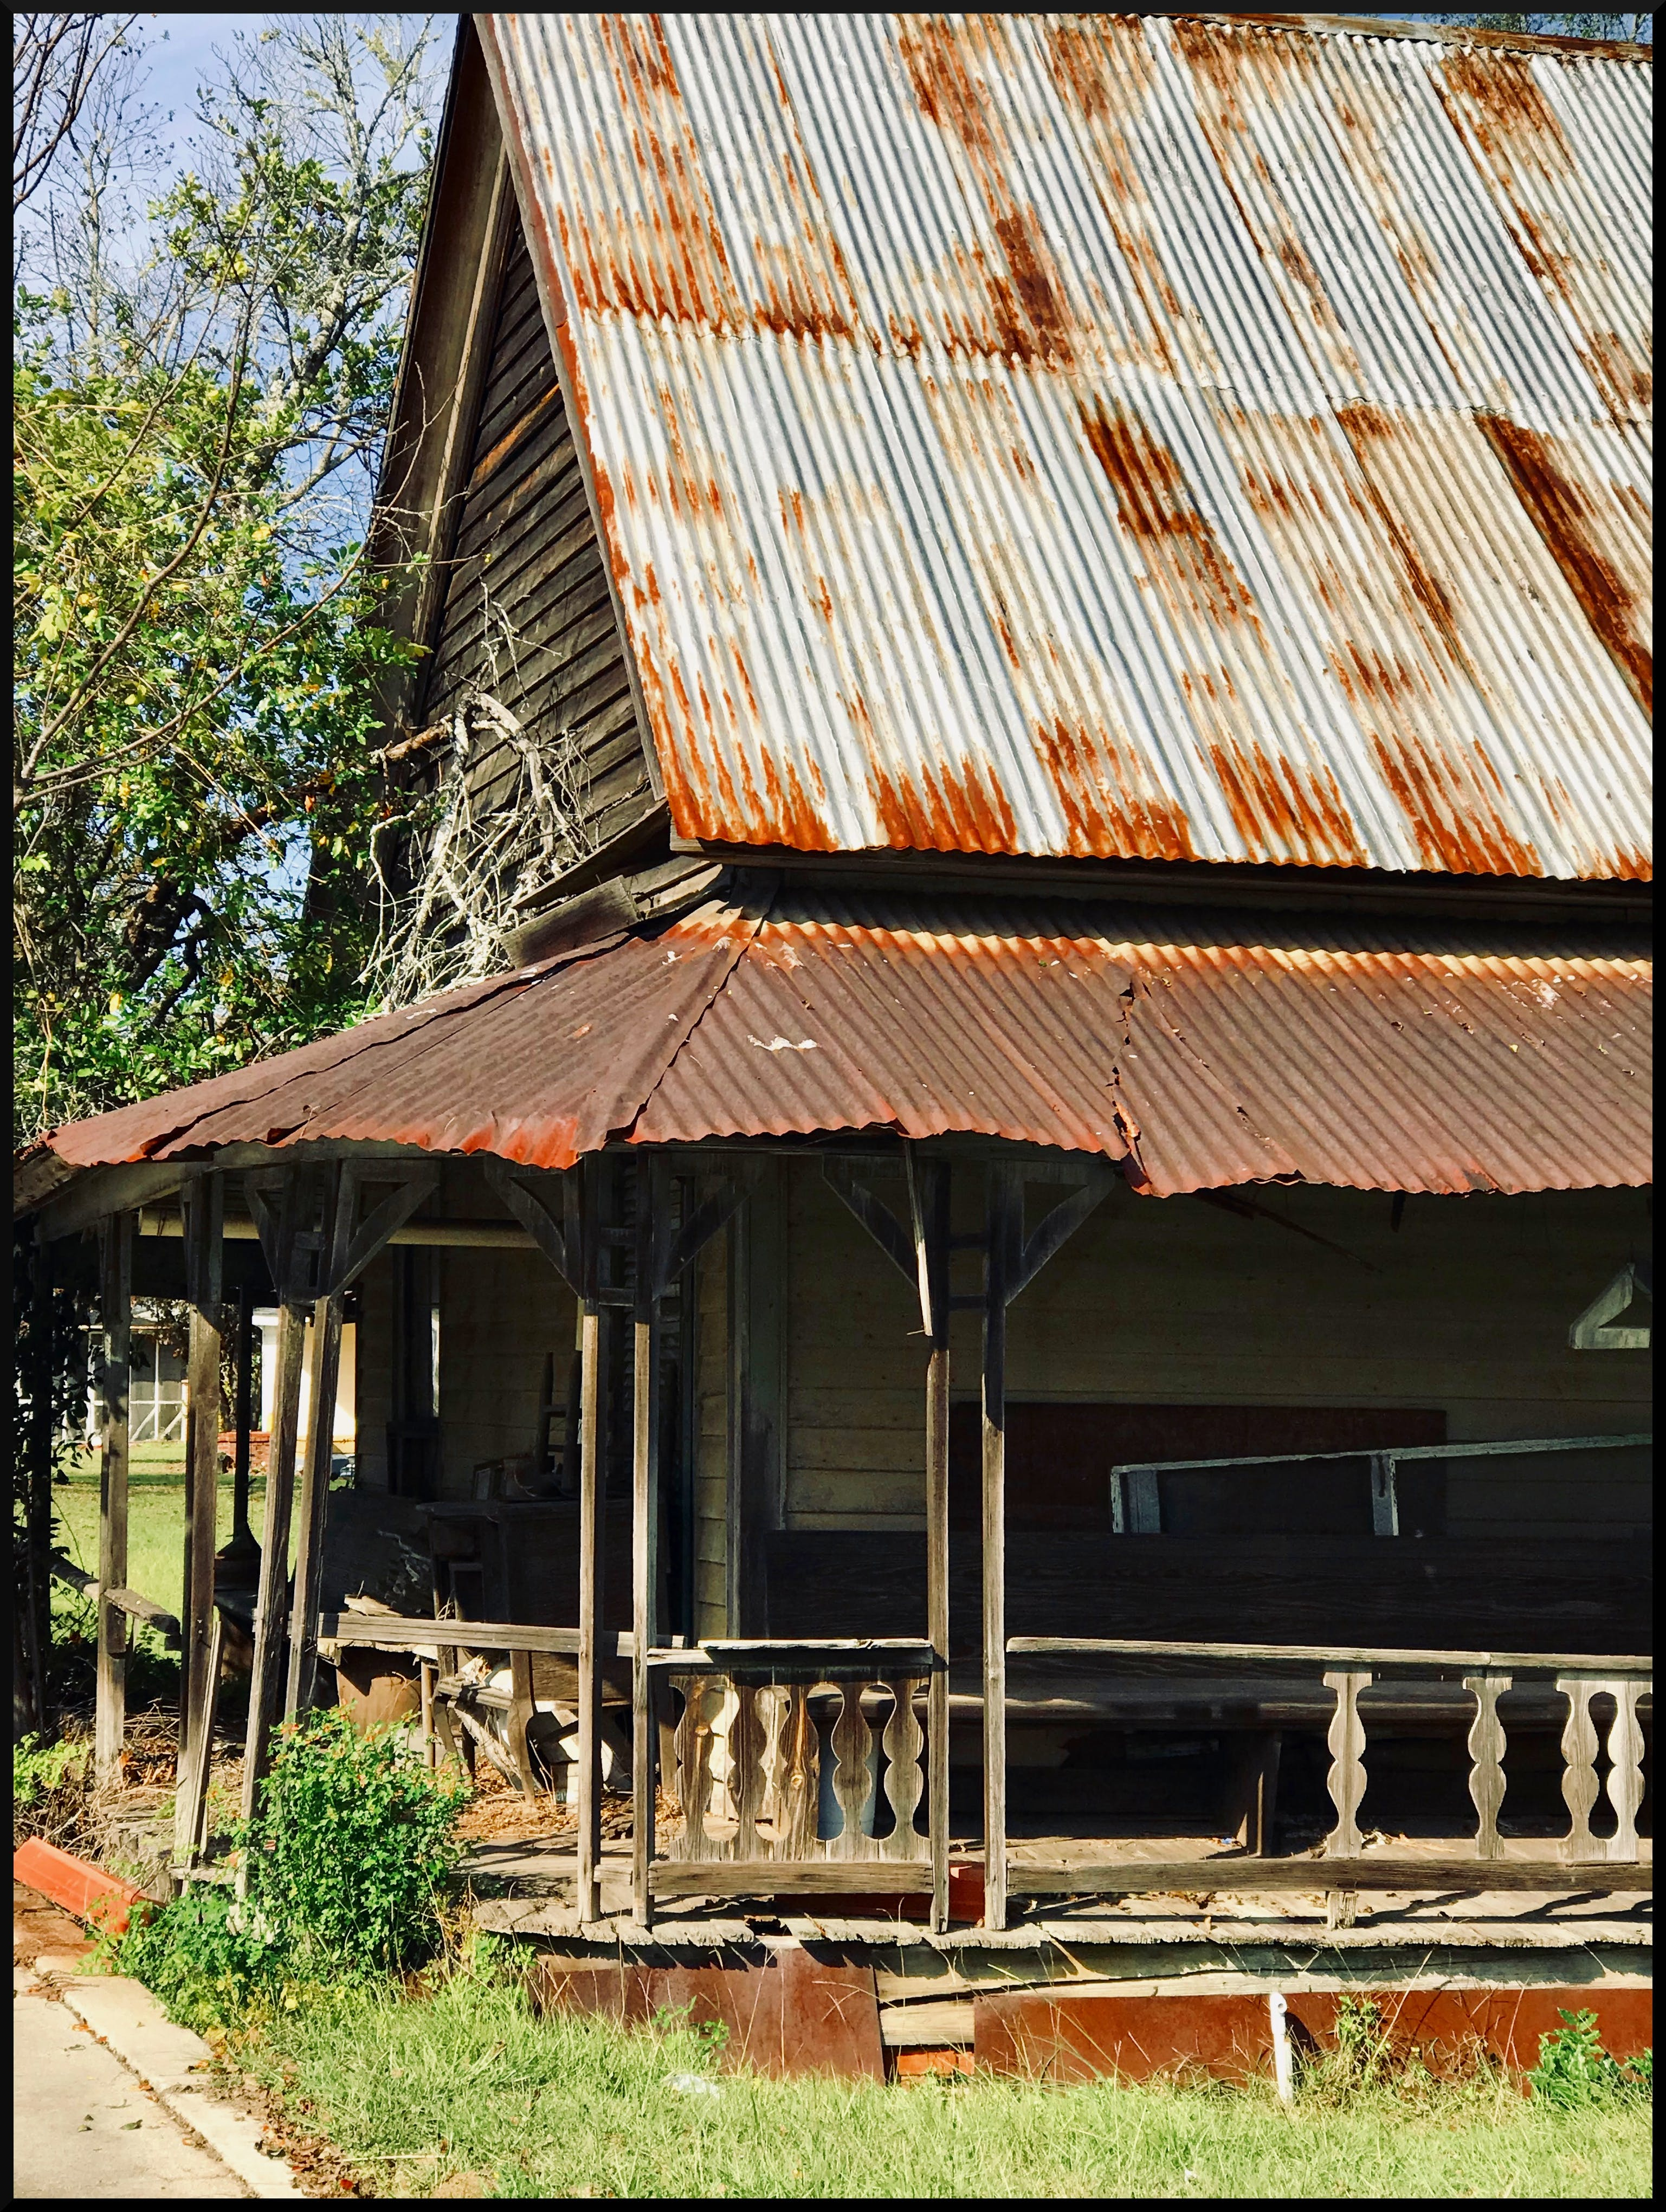 Free stock photo of abandoned house, old house, old porch, tin roof